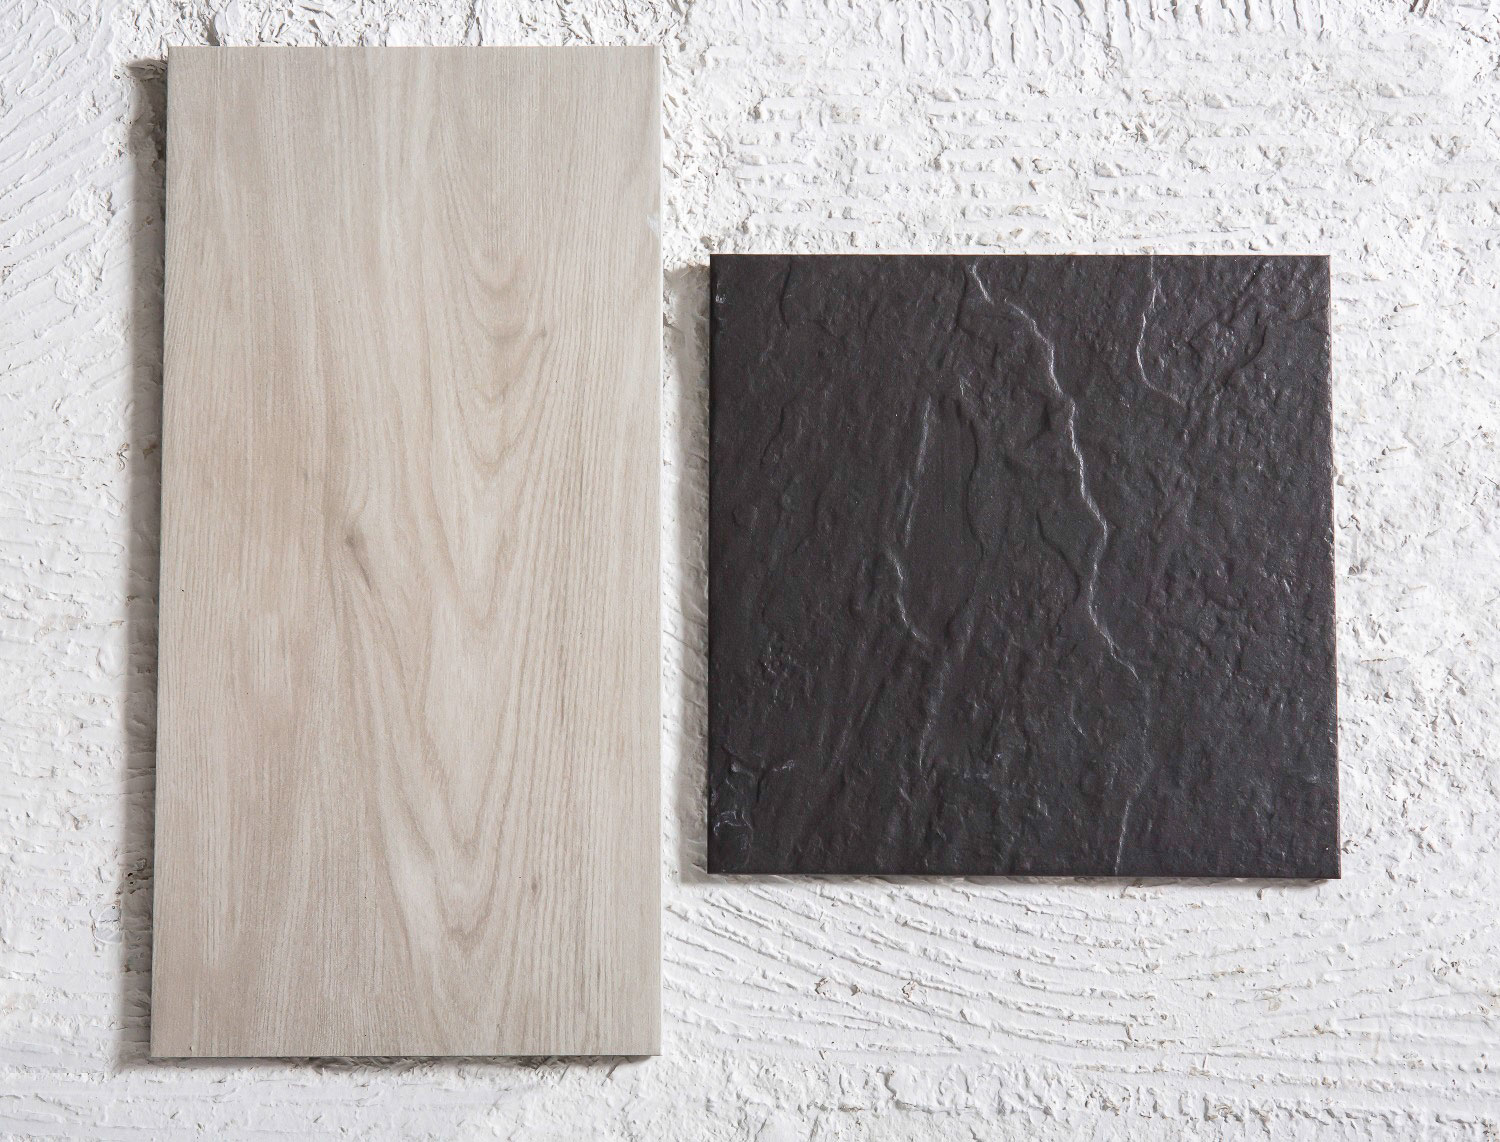 Tal advises on installing wood look ceramic tiles tal on installing large format tiles doublecrazyfo Images